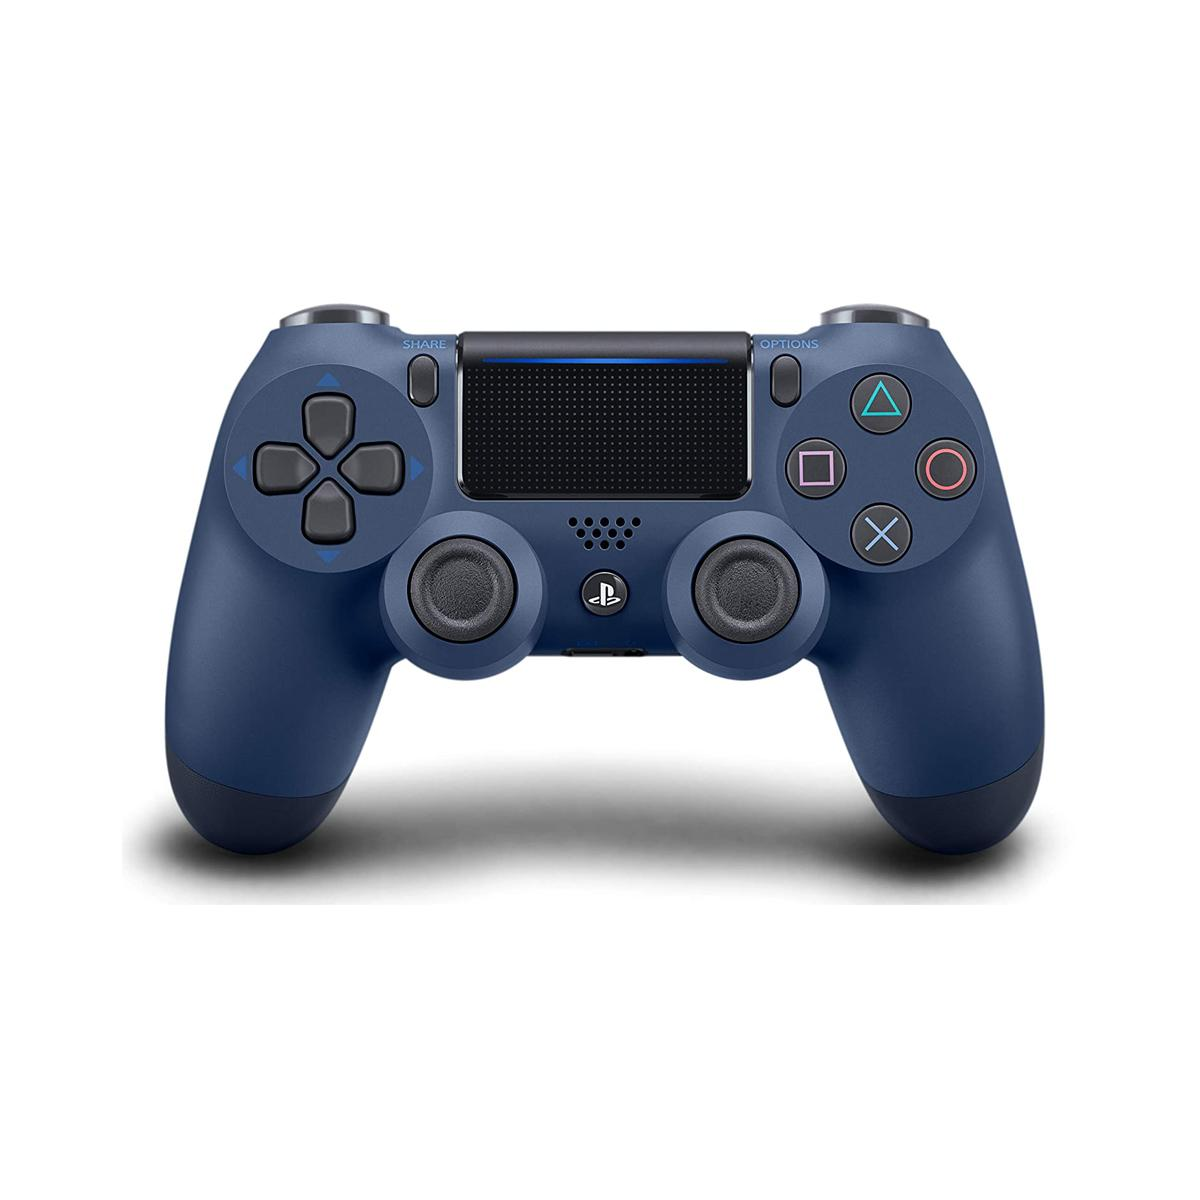 Sony PS4 Wireless Controller - Mid Night Blue